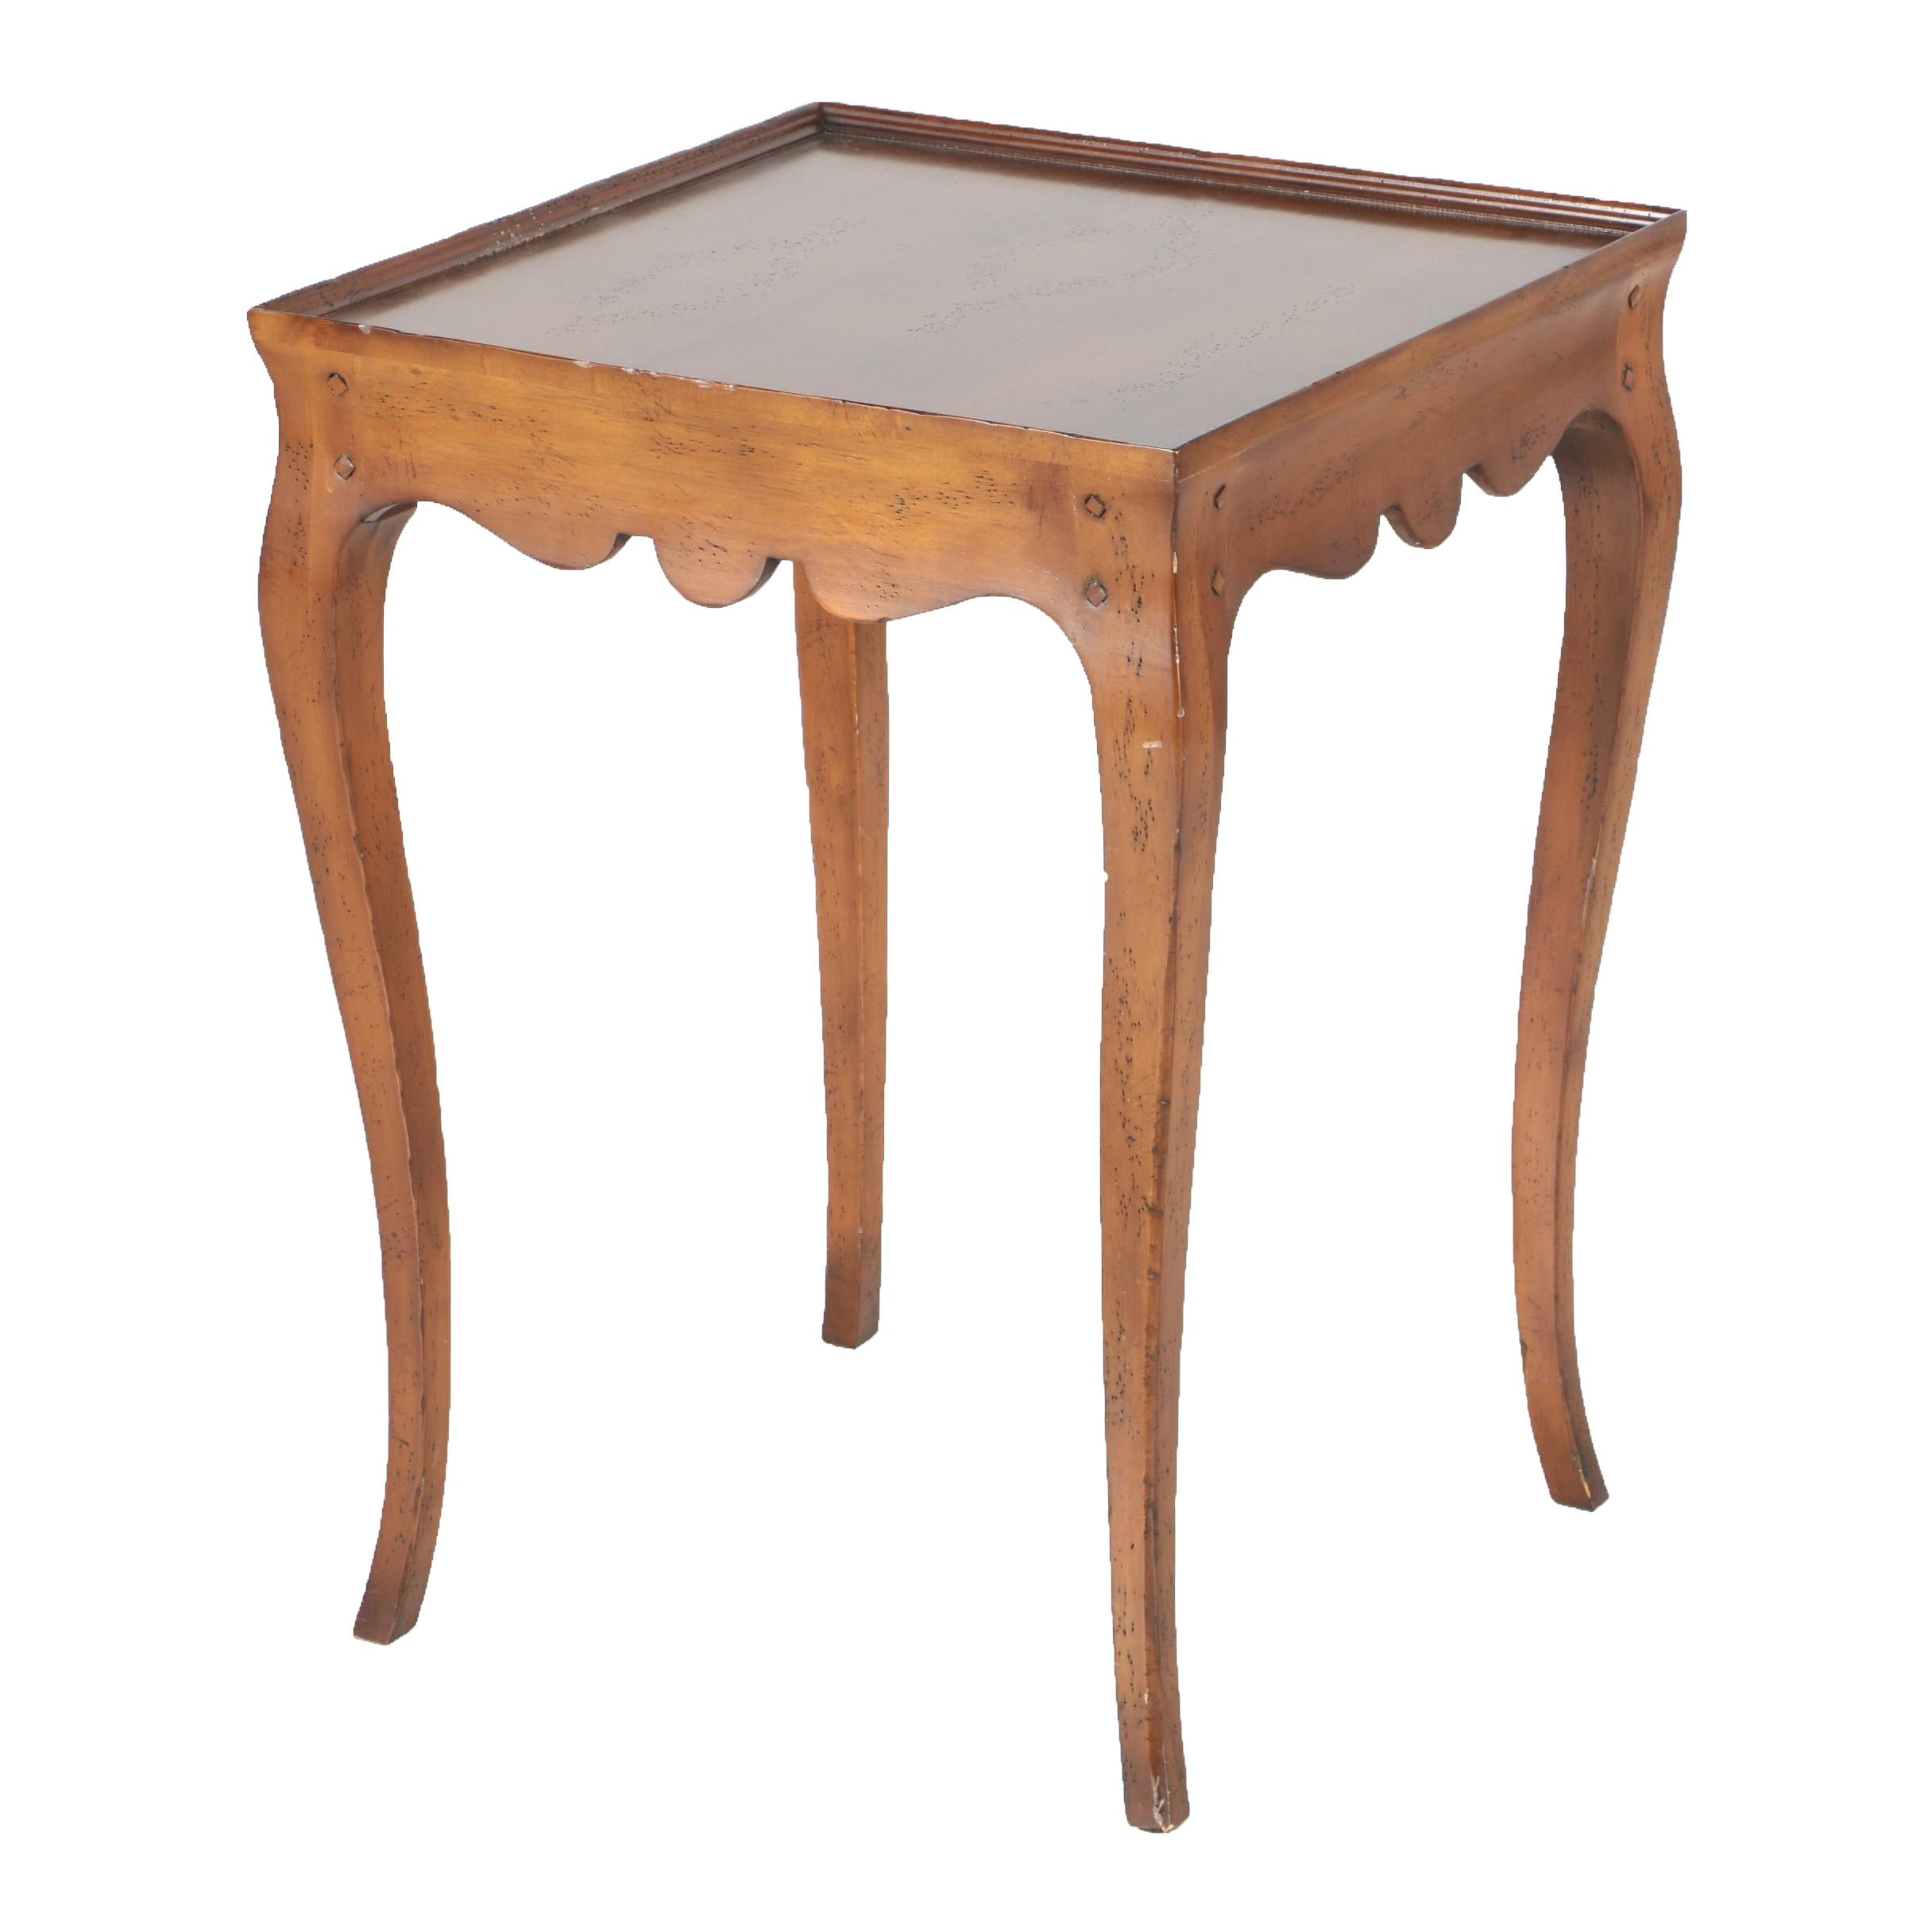 Vintage Louis XV Style Side Table by Milling Road of Baker Furniture